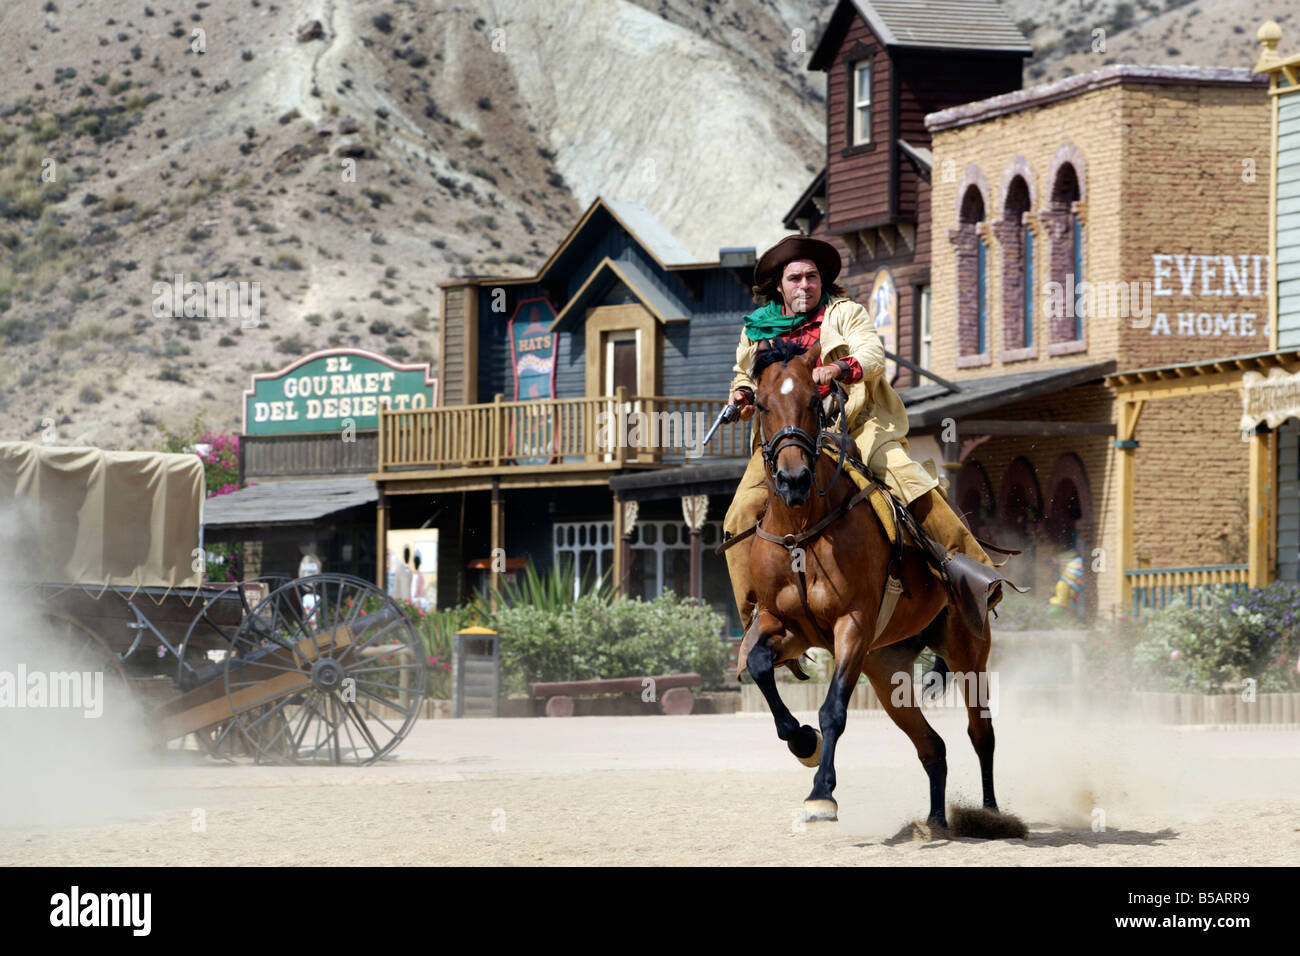 Cowboy shootout at  Spaghetti Western film set, Oasys, Mini Hollywood, Tabernas, Almeria, Spain - Stock Image